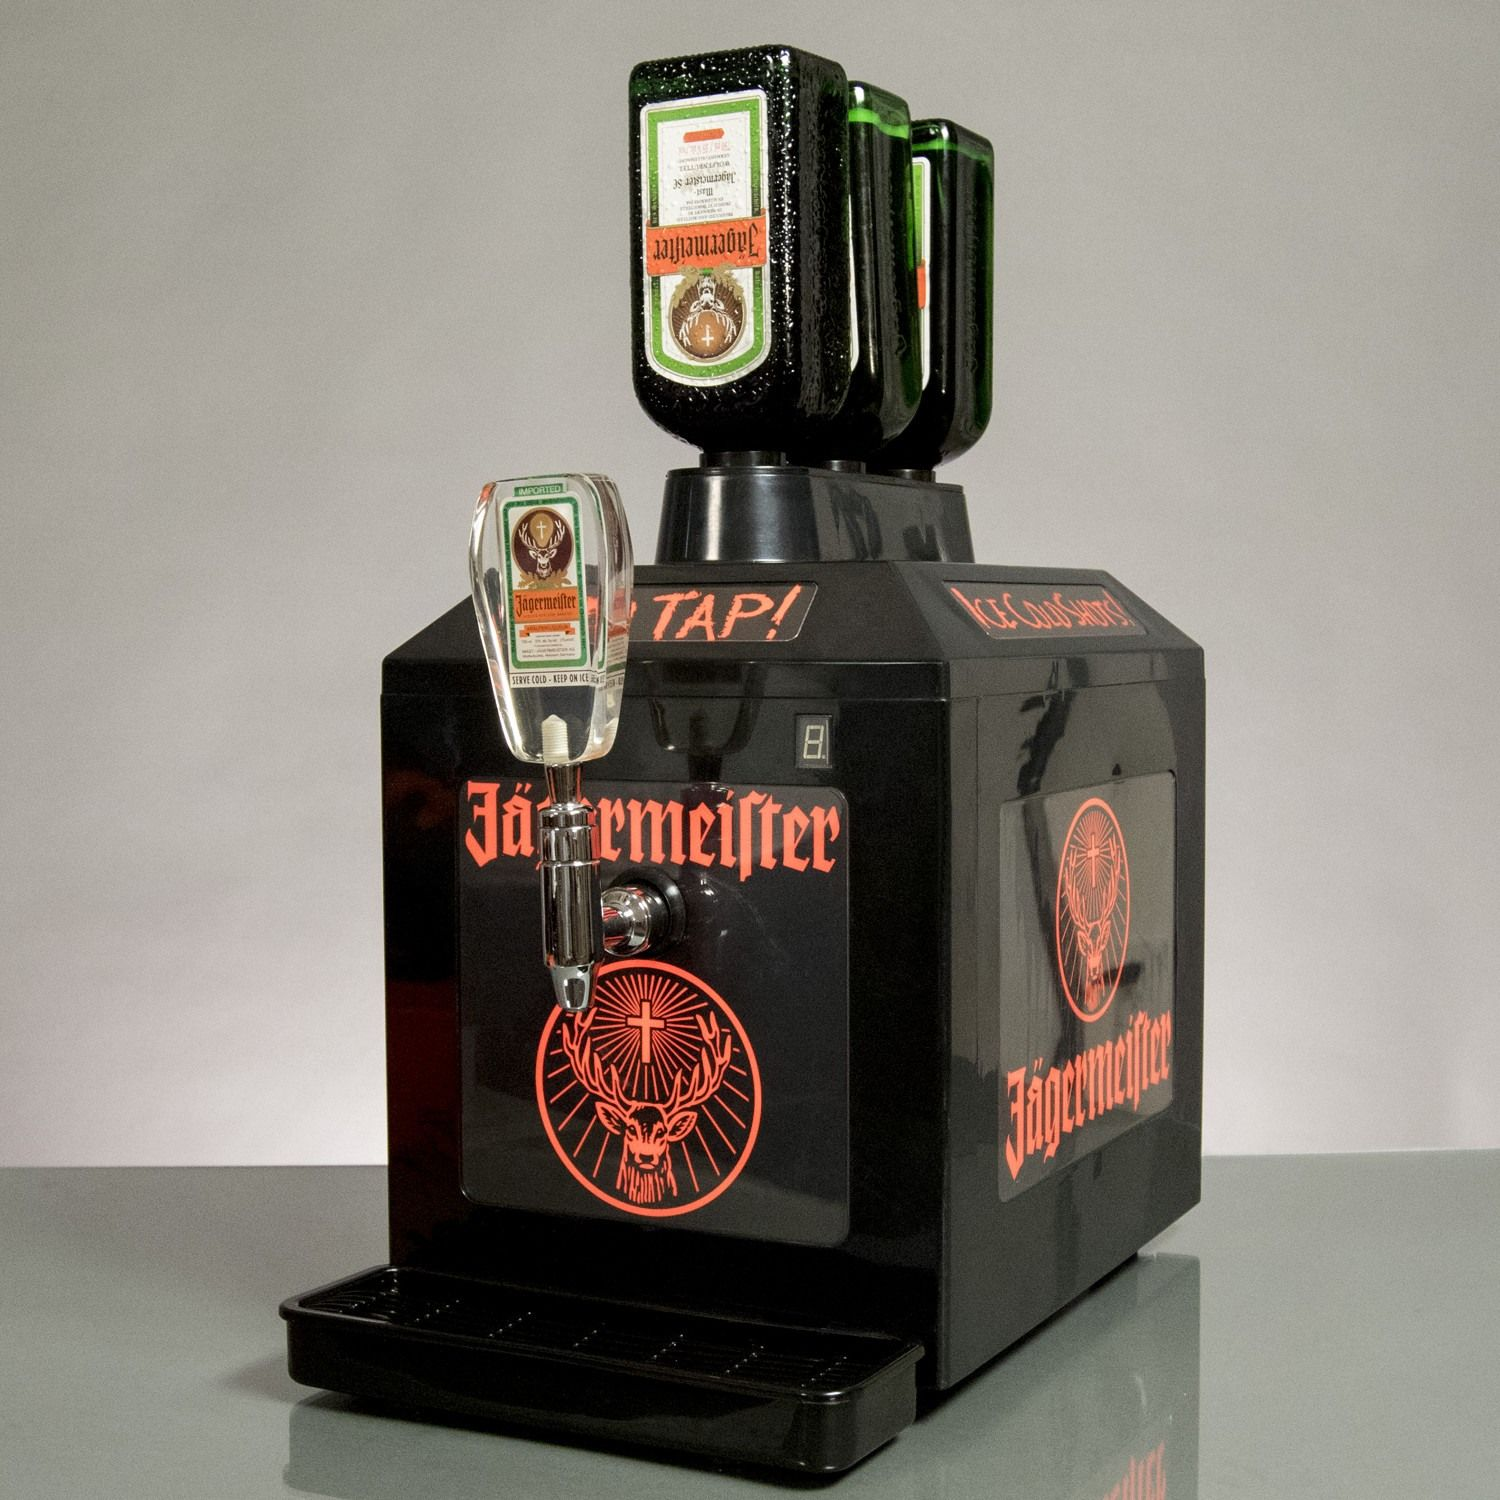 The Jägermeister 3 Bottle Tap Machine Is Perfect For Serving Up Ice Cold Shots Jagermeister Bottle Shoot Bottle